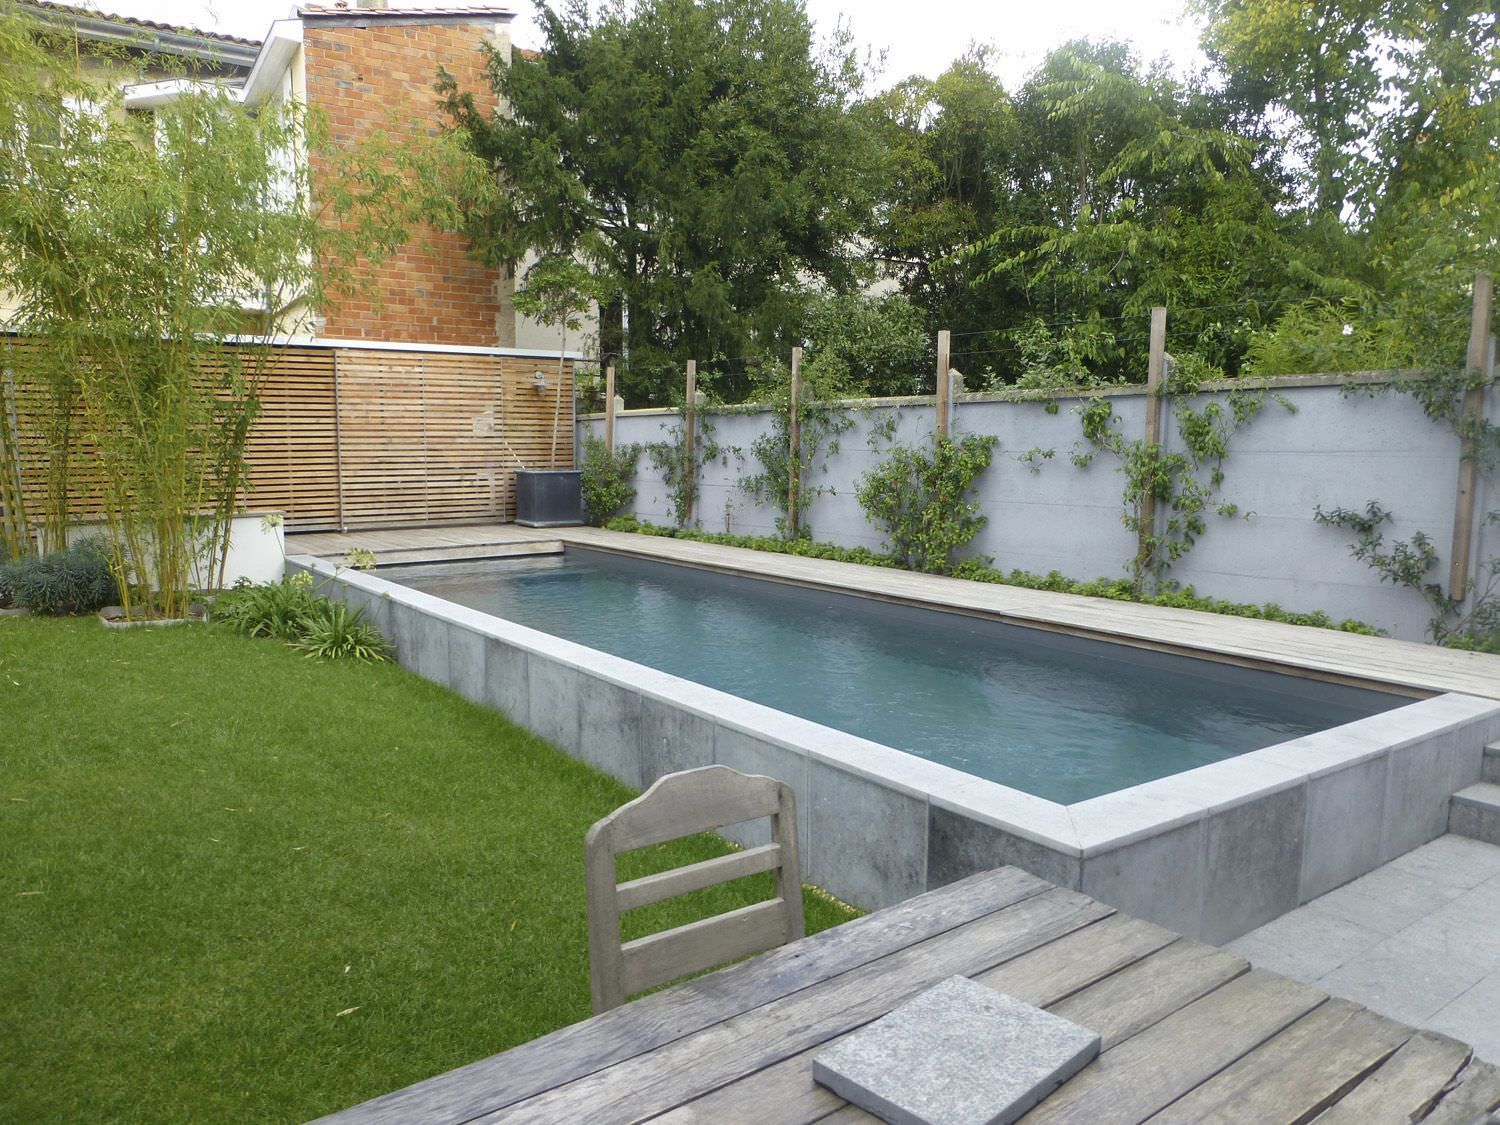 Piscine semi enterr e en b ton plouf pinterest for Petite piscine enterree